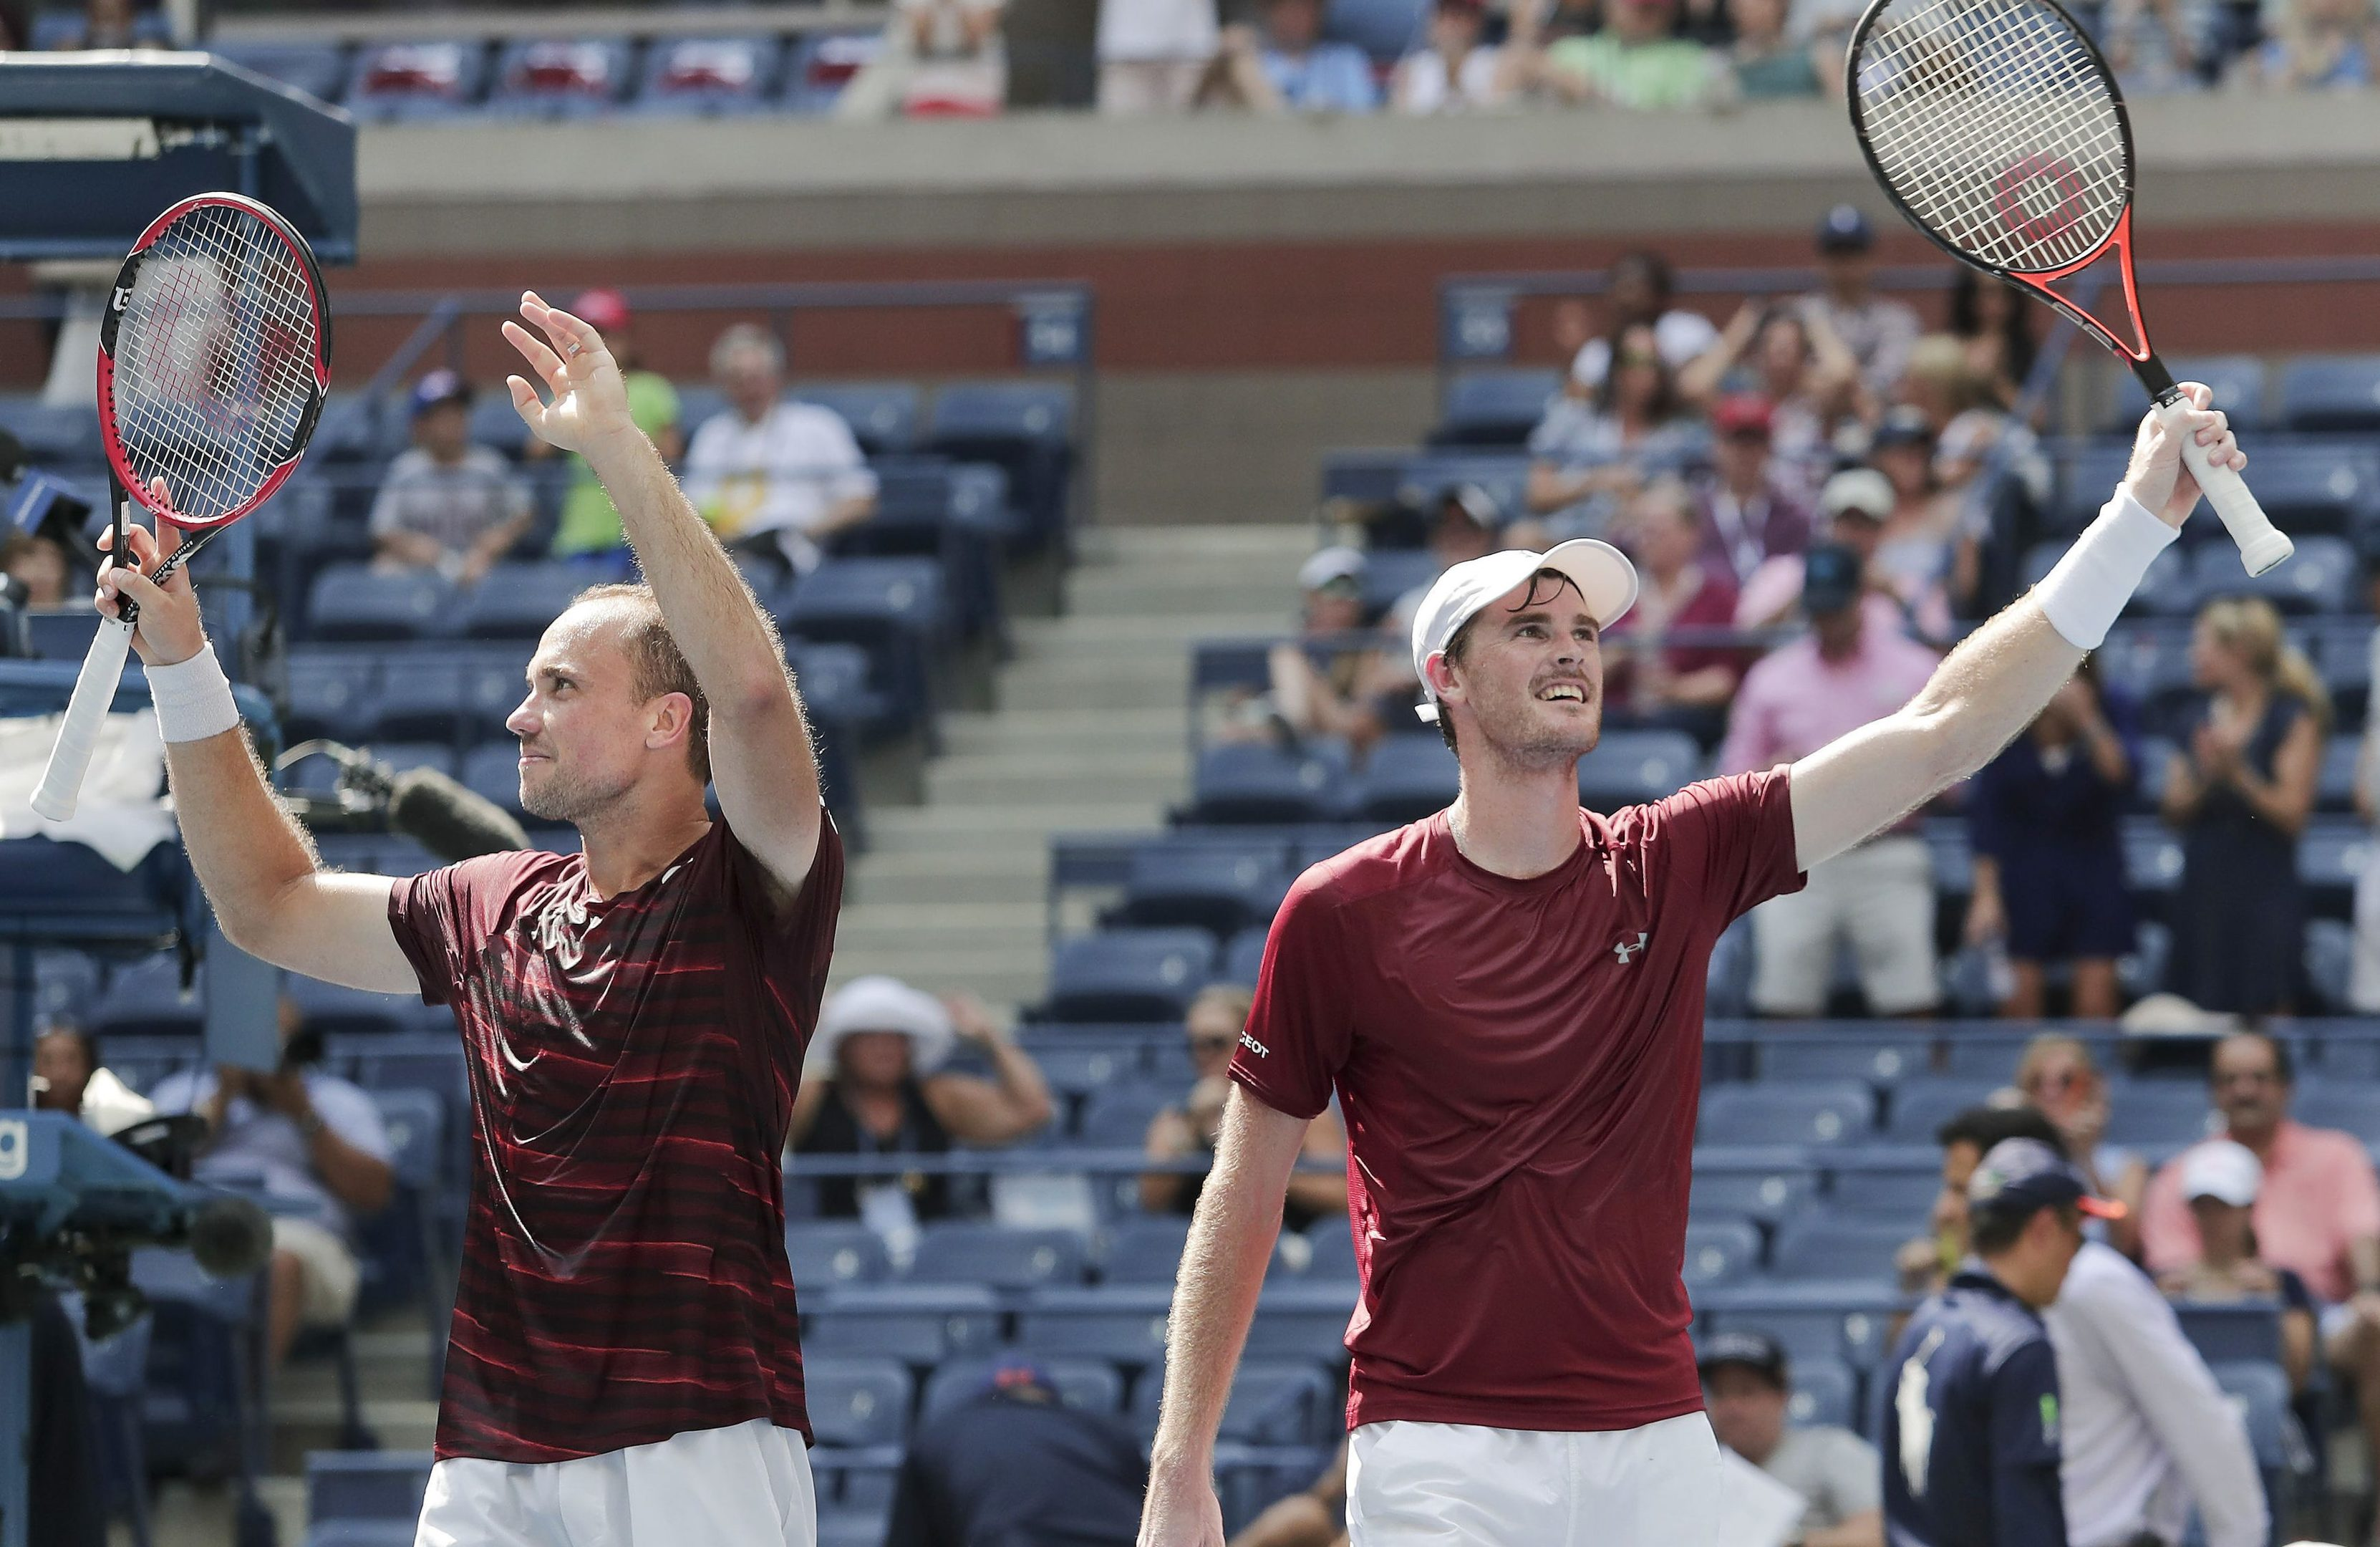 Bruno Soares,left, and Jamie Murray celebrate (AP Photo/Julie Jacobson)